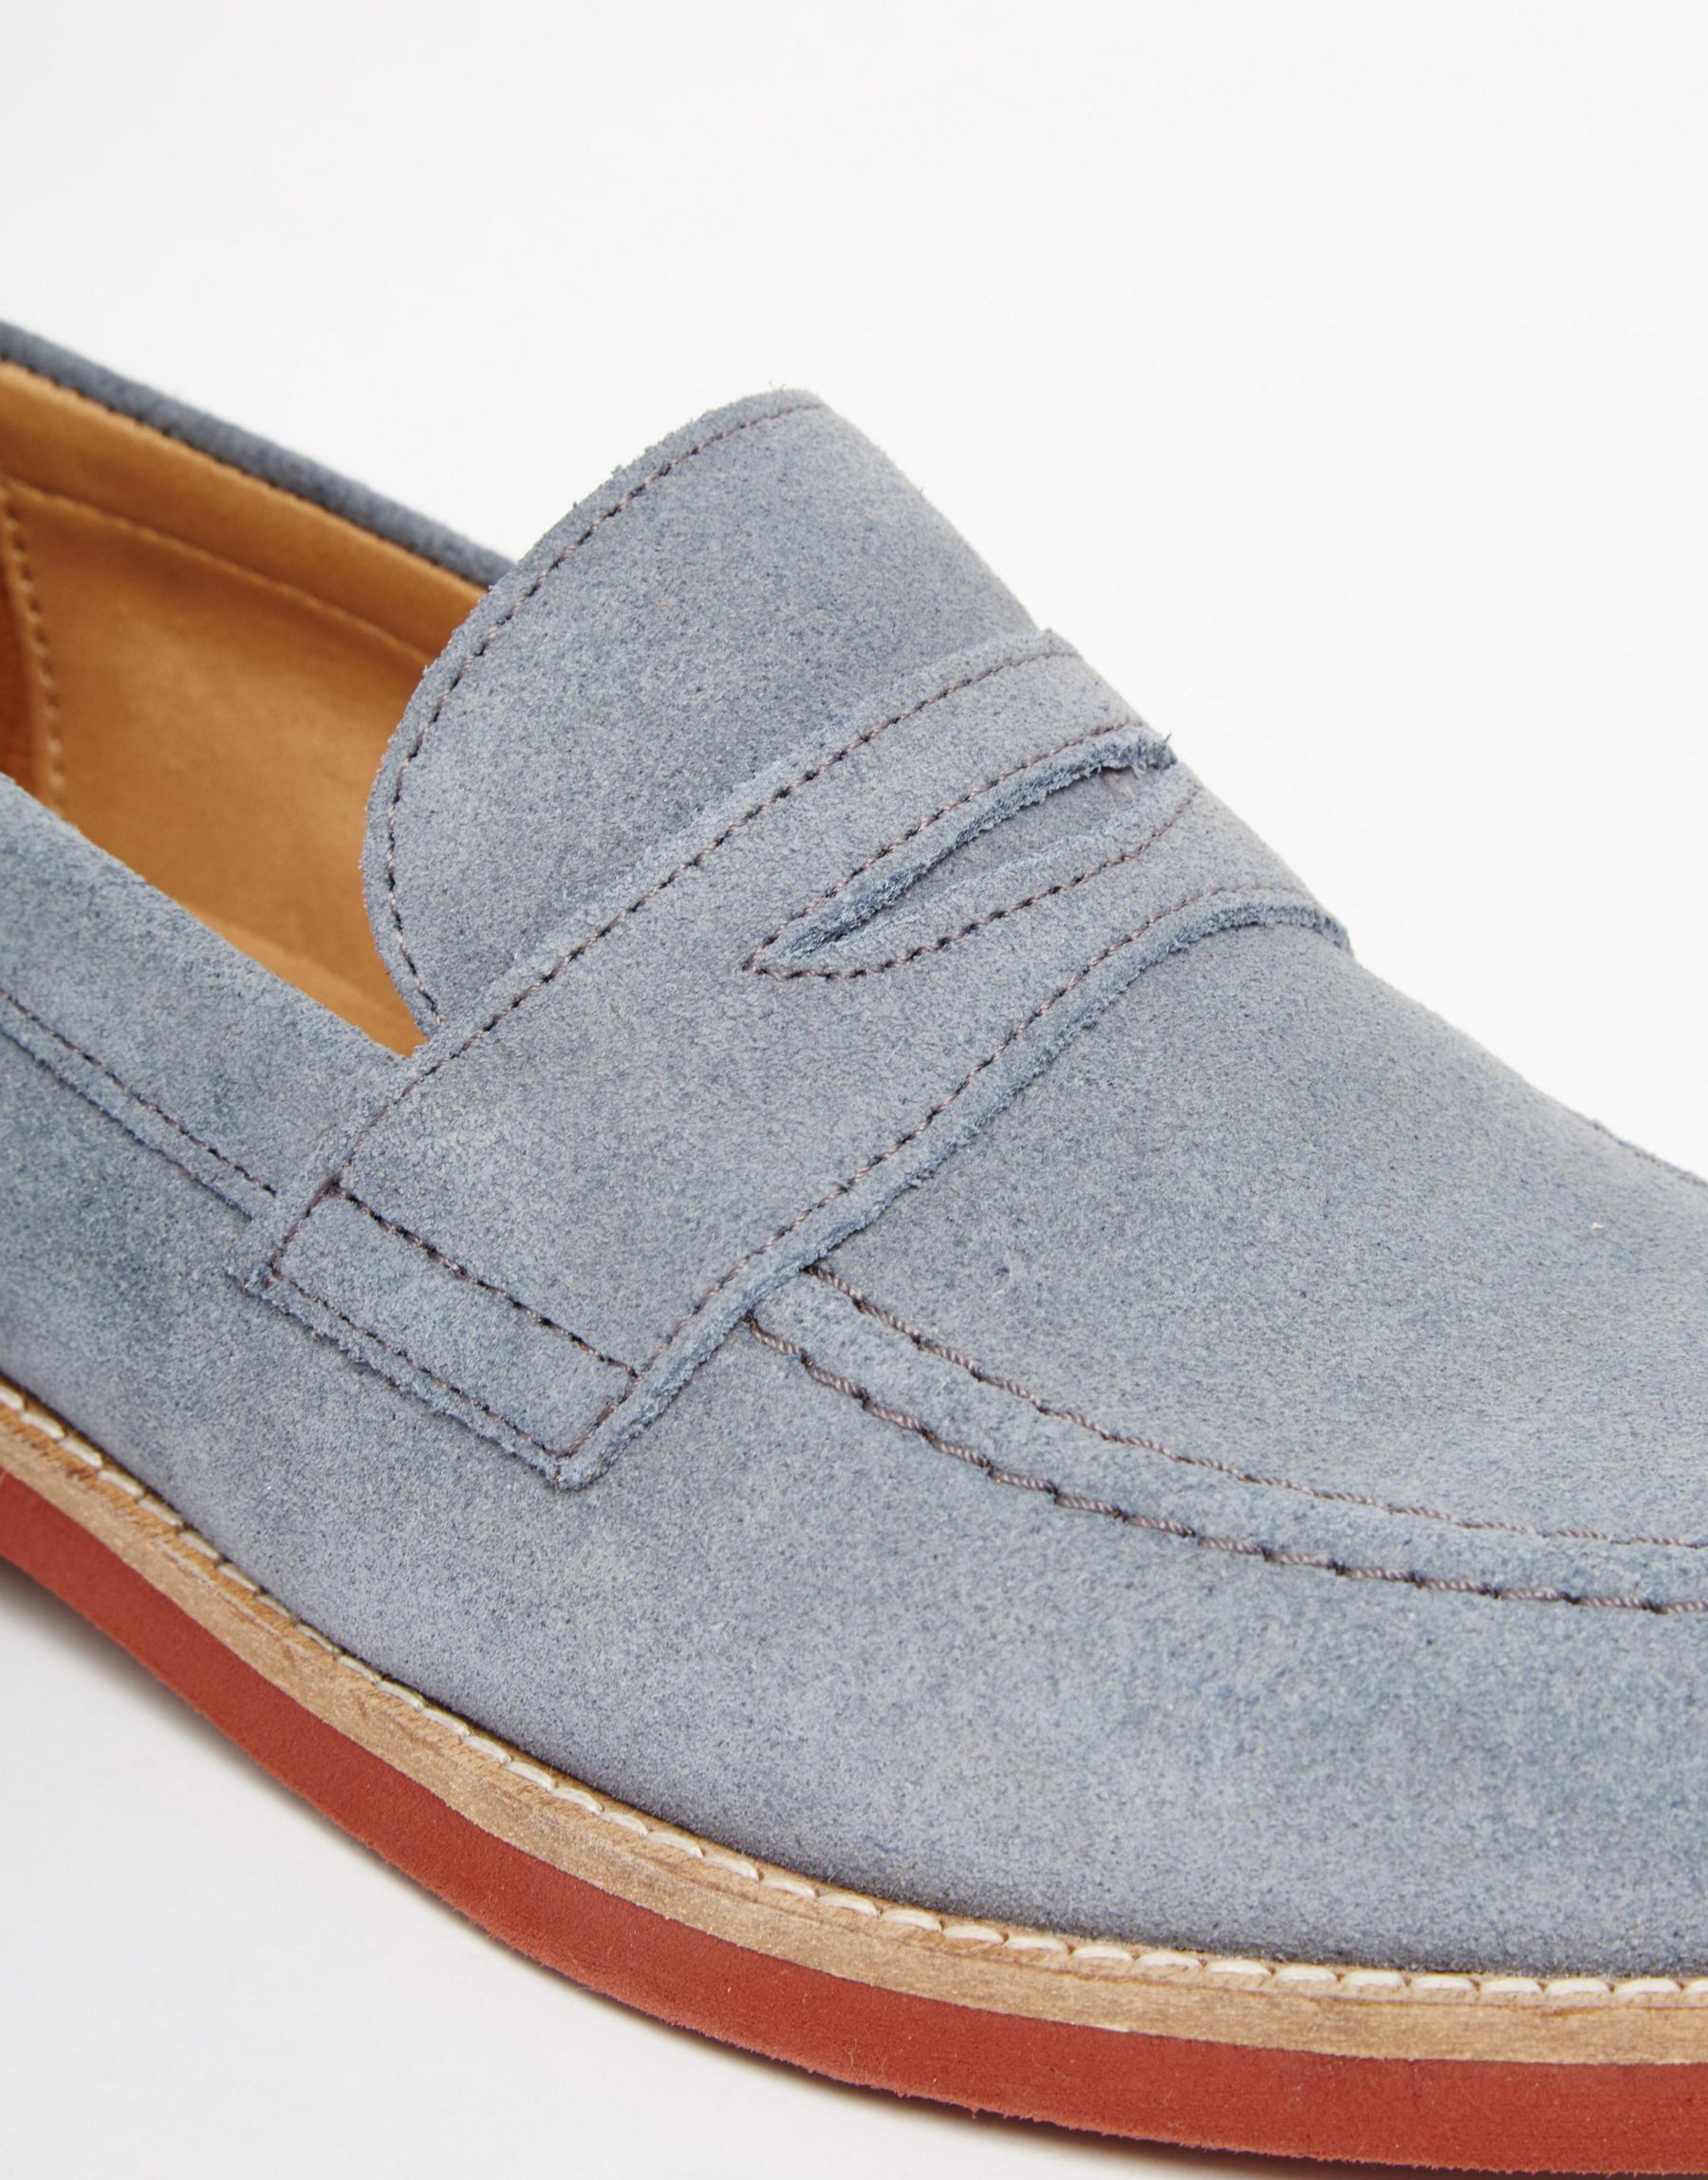 ASOS Penny Loafers In Blue Suede in Blue for Men - Lyst